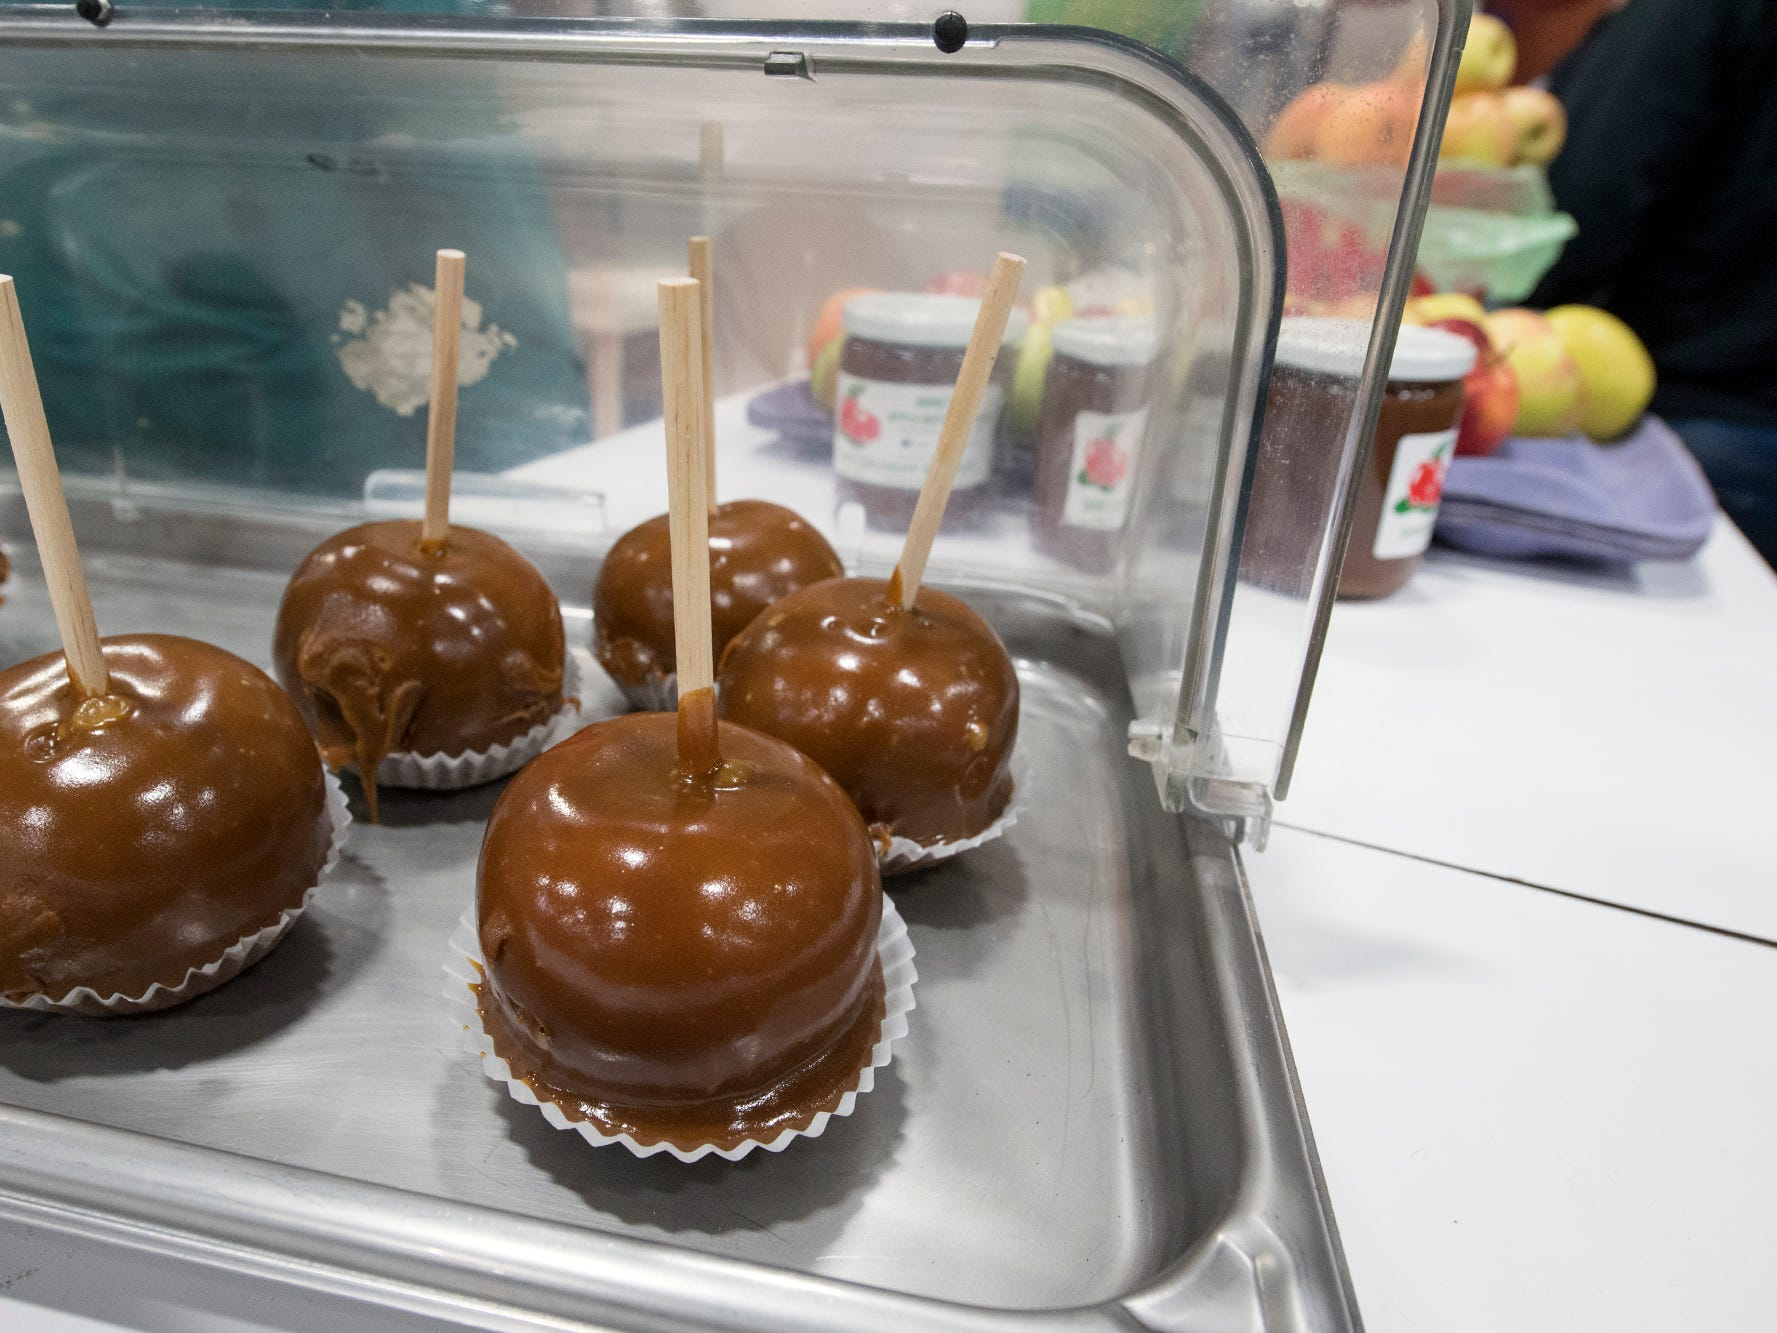 Caramel Pennsylvania apples ready to be eaten in the food court during The 103rd Pennsylvania Farm Show in Harrisburg Sunday January 6, 2019.